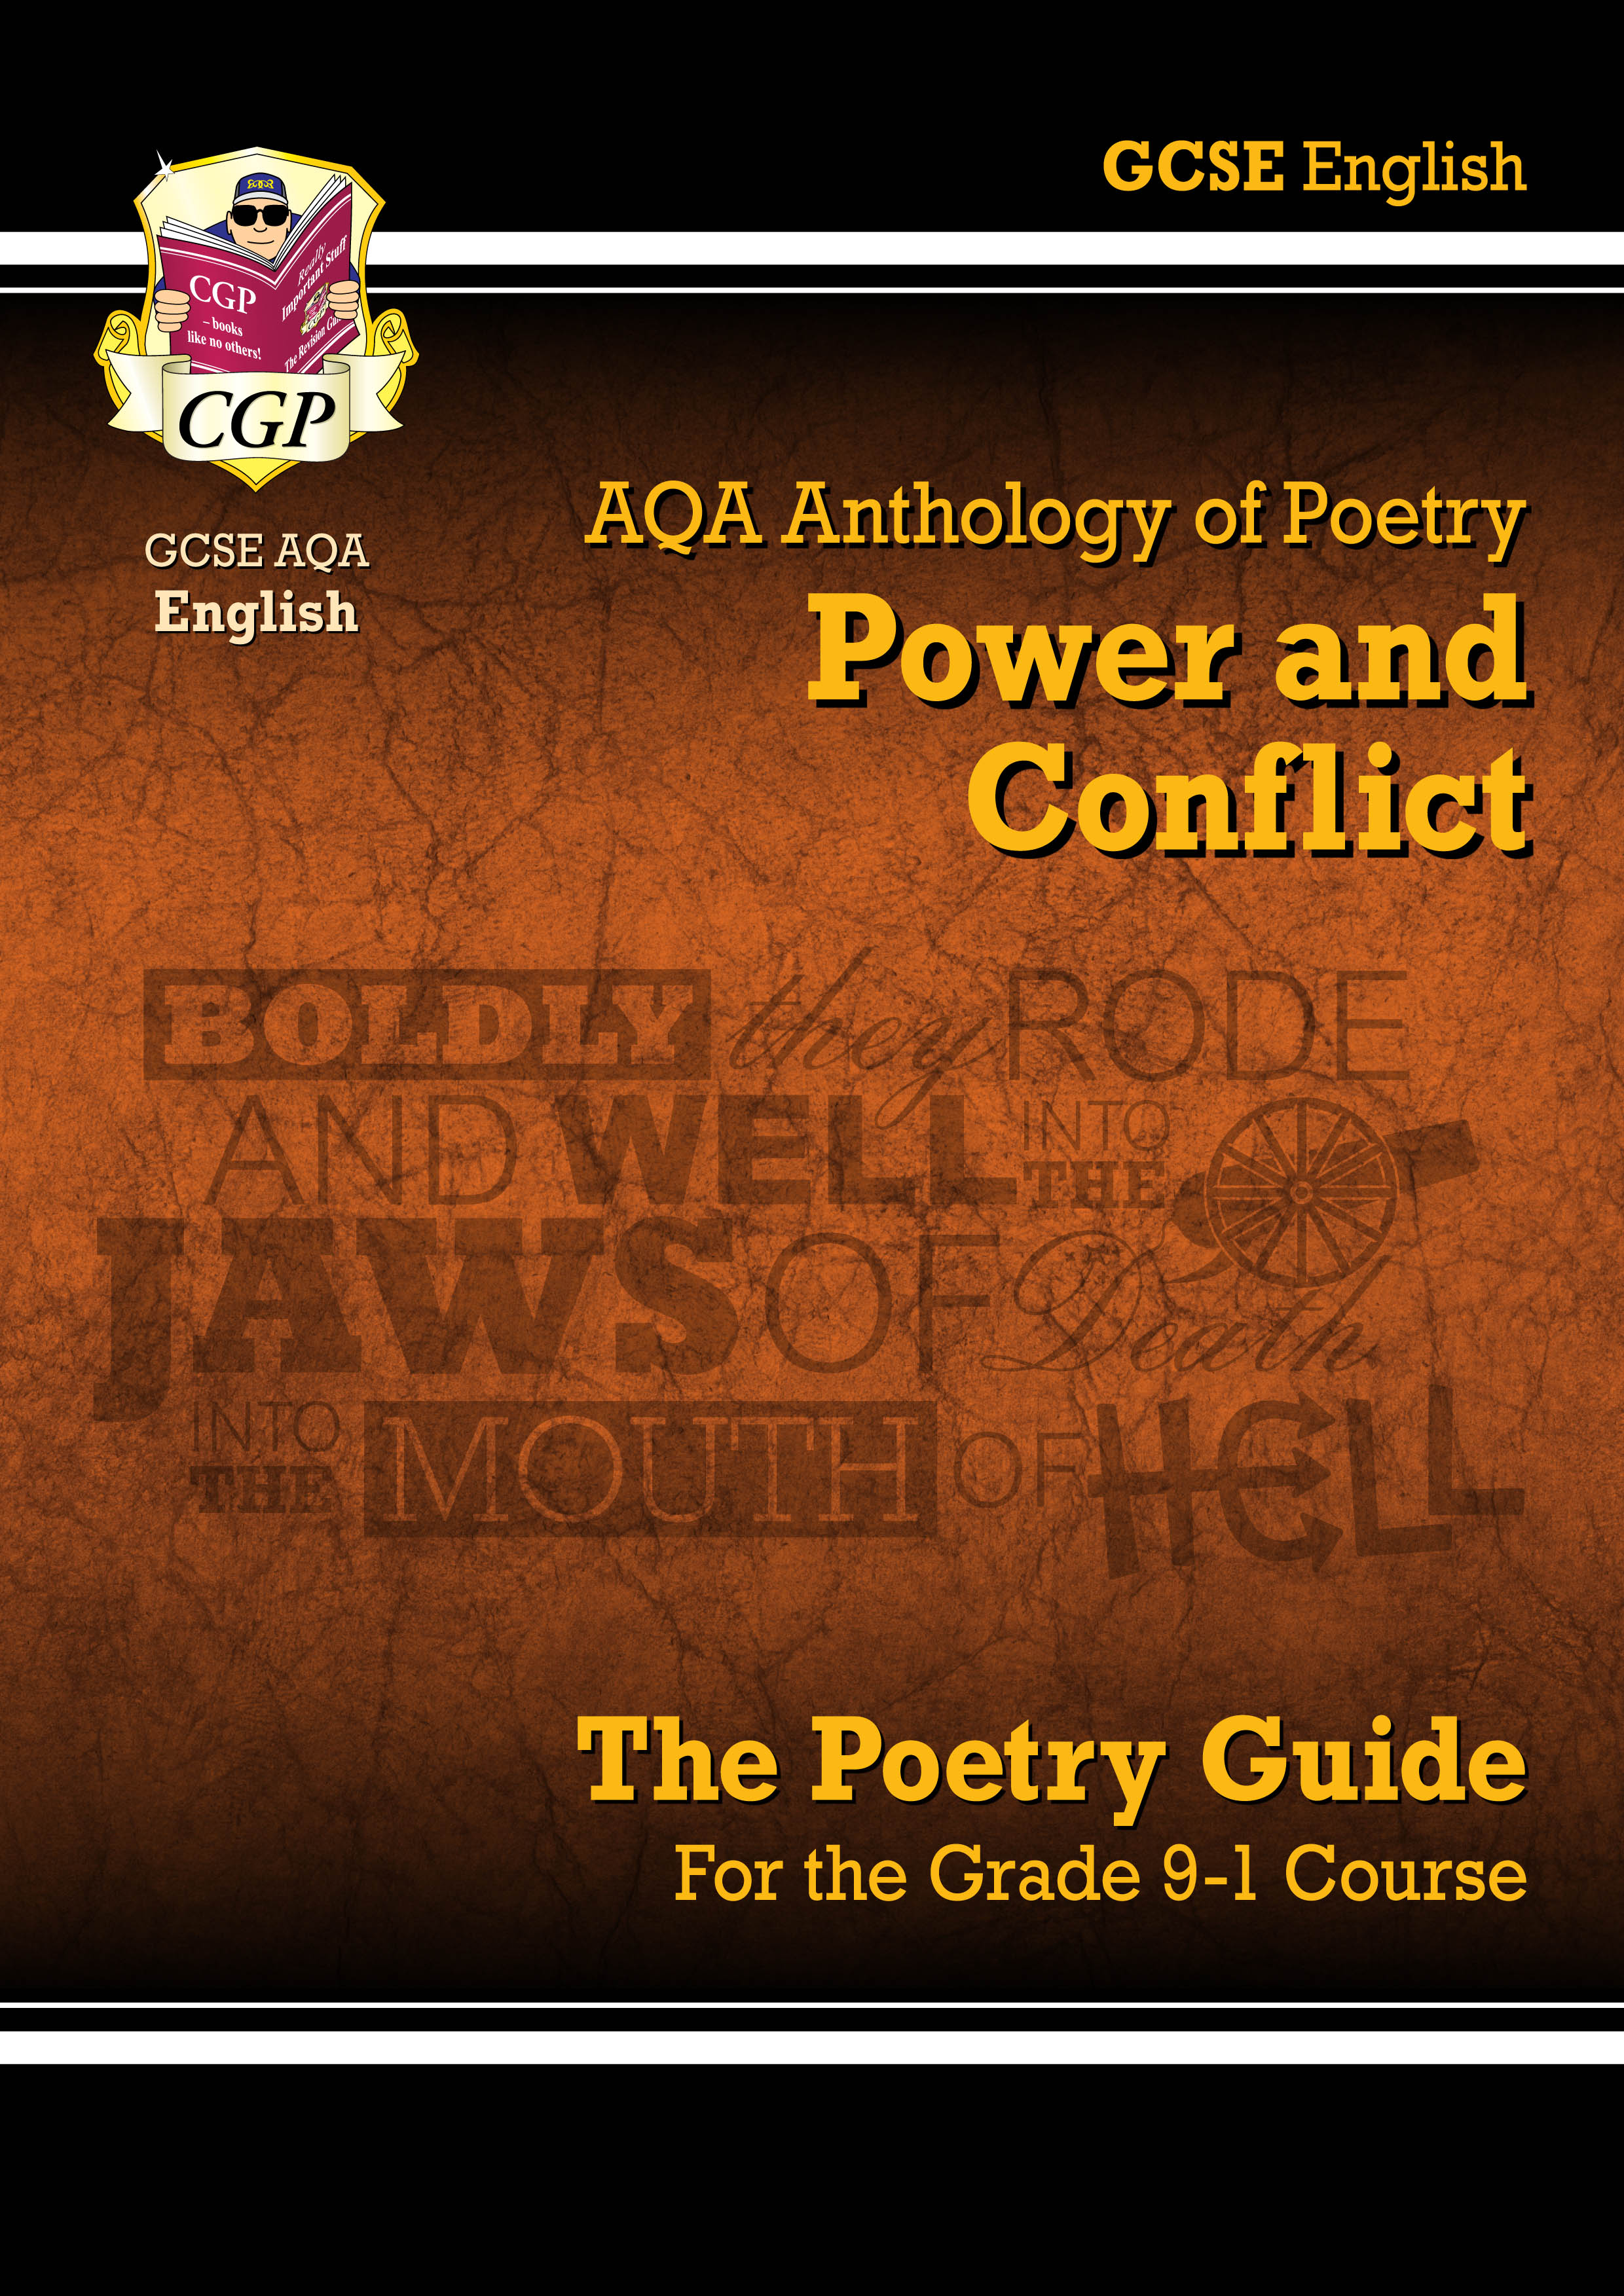 ACHR43DK - New GCSE English Literature AQA Poetry Guide: Power & Conflict Anthology - for the Grade